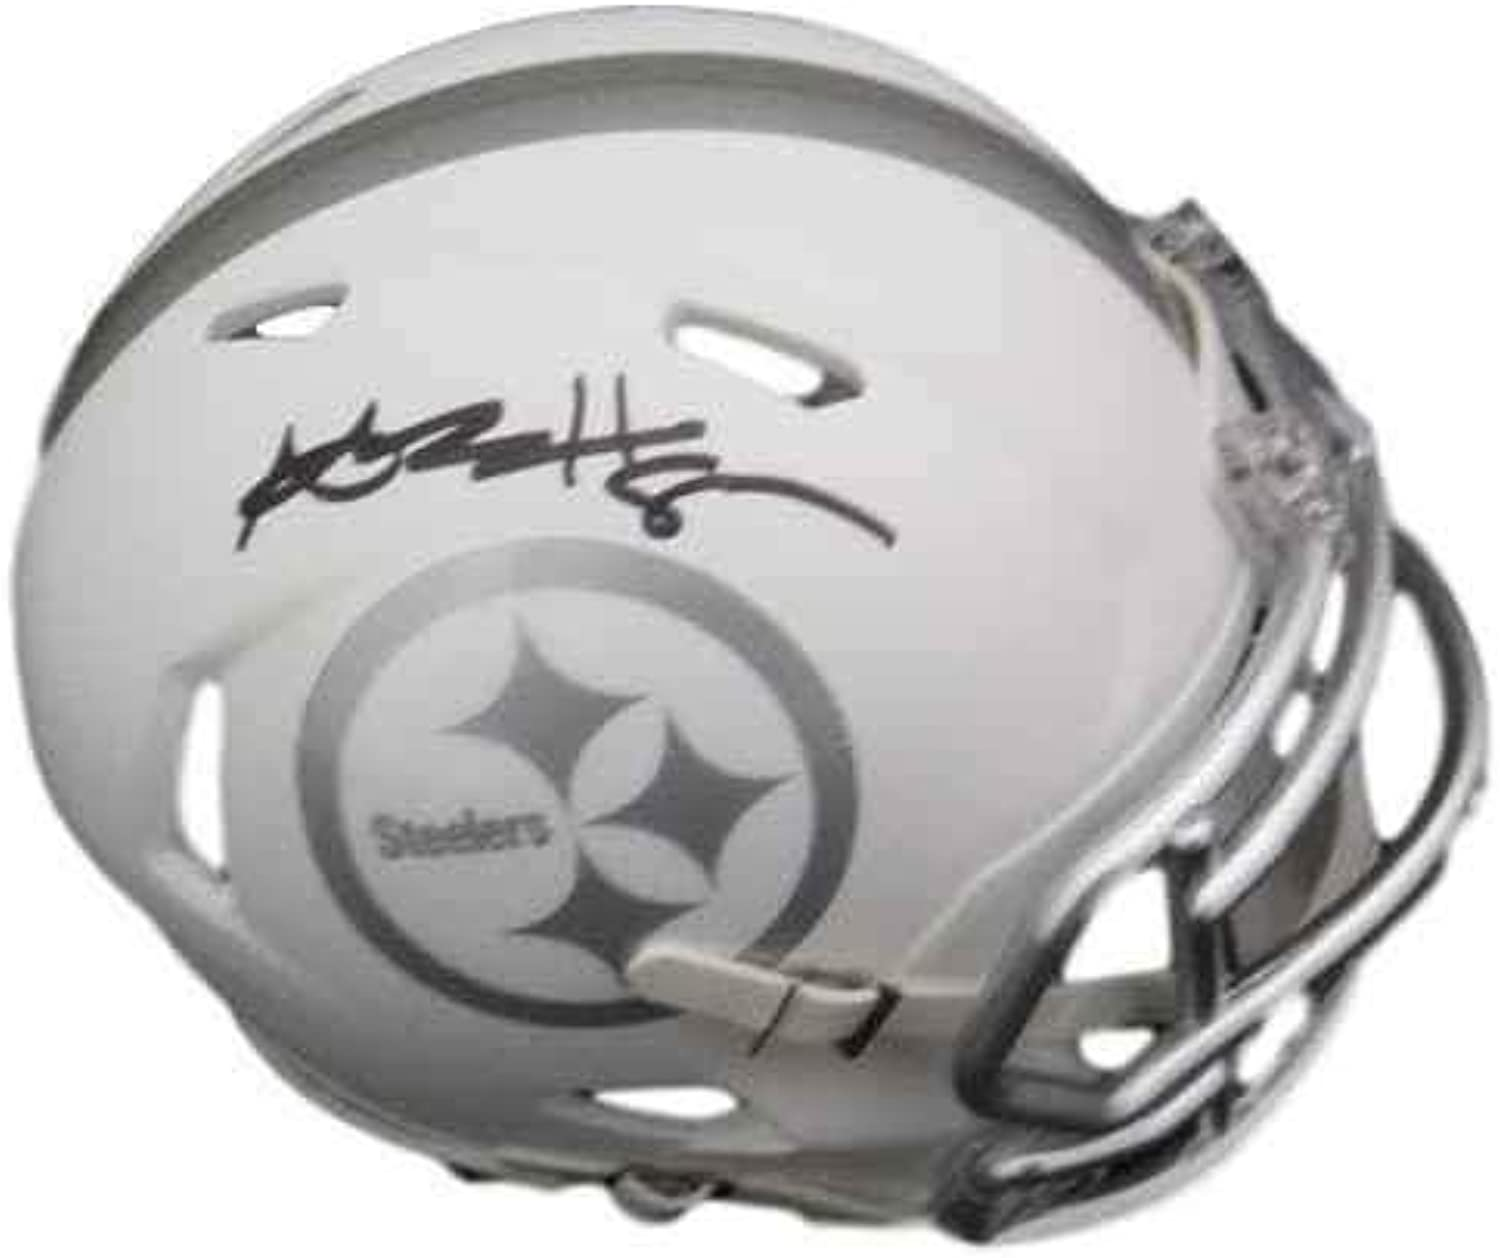 Signed Antonio Brown Mini Helmet  Ice 16517  JSA Certified  Autographed NFL Mini Helmets